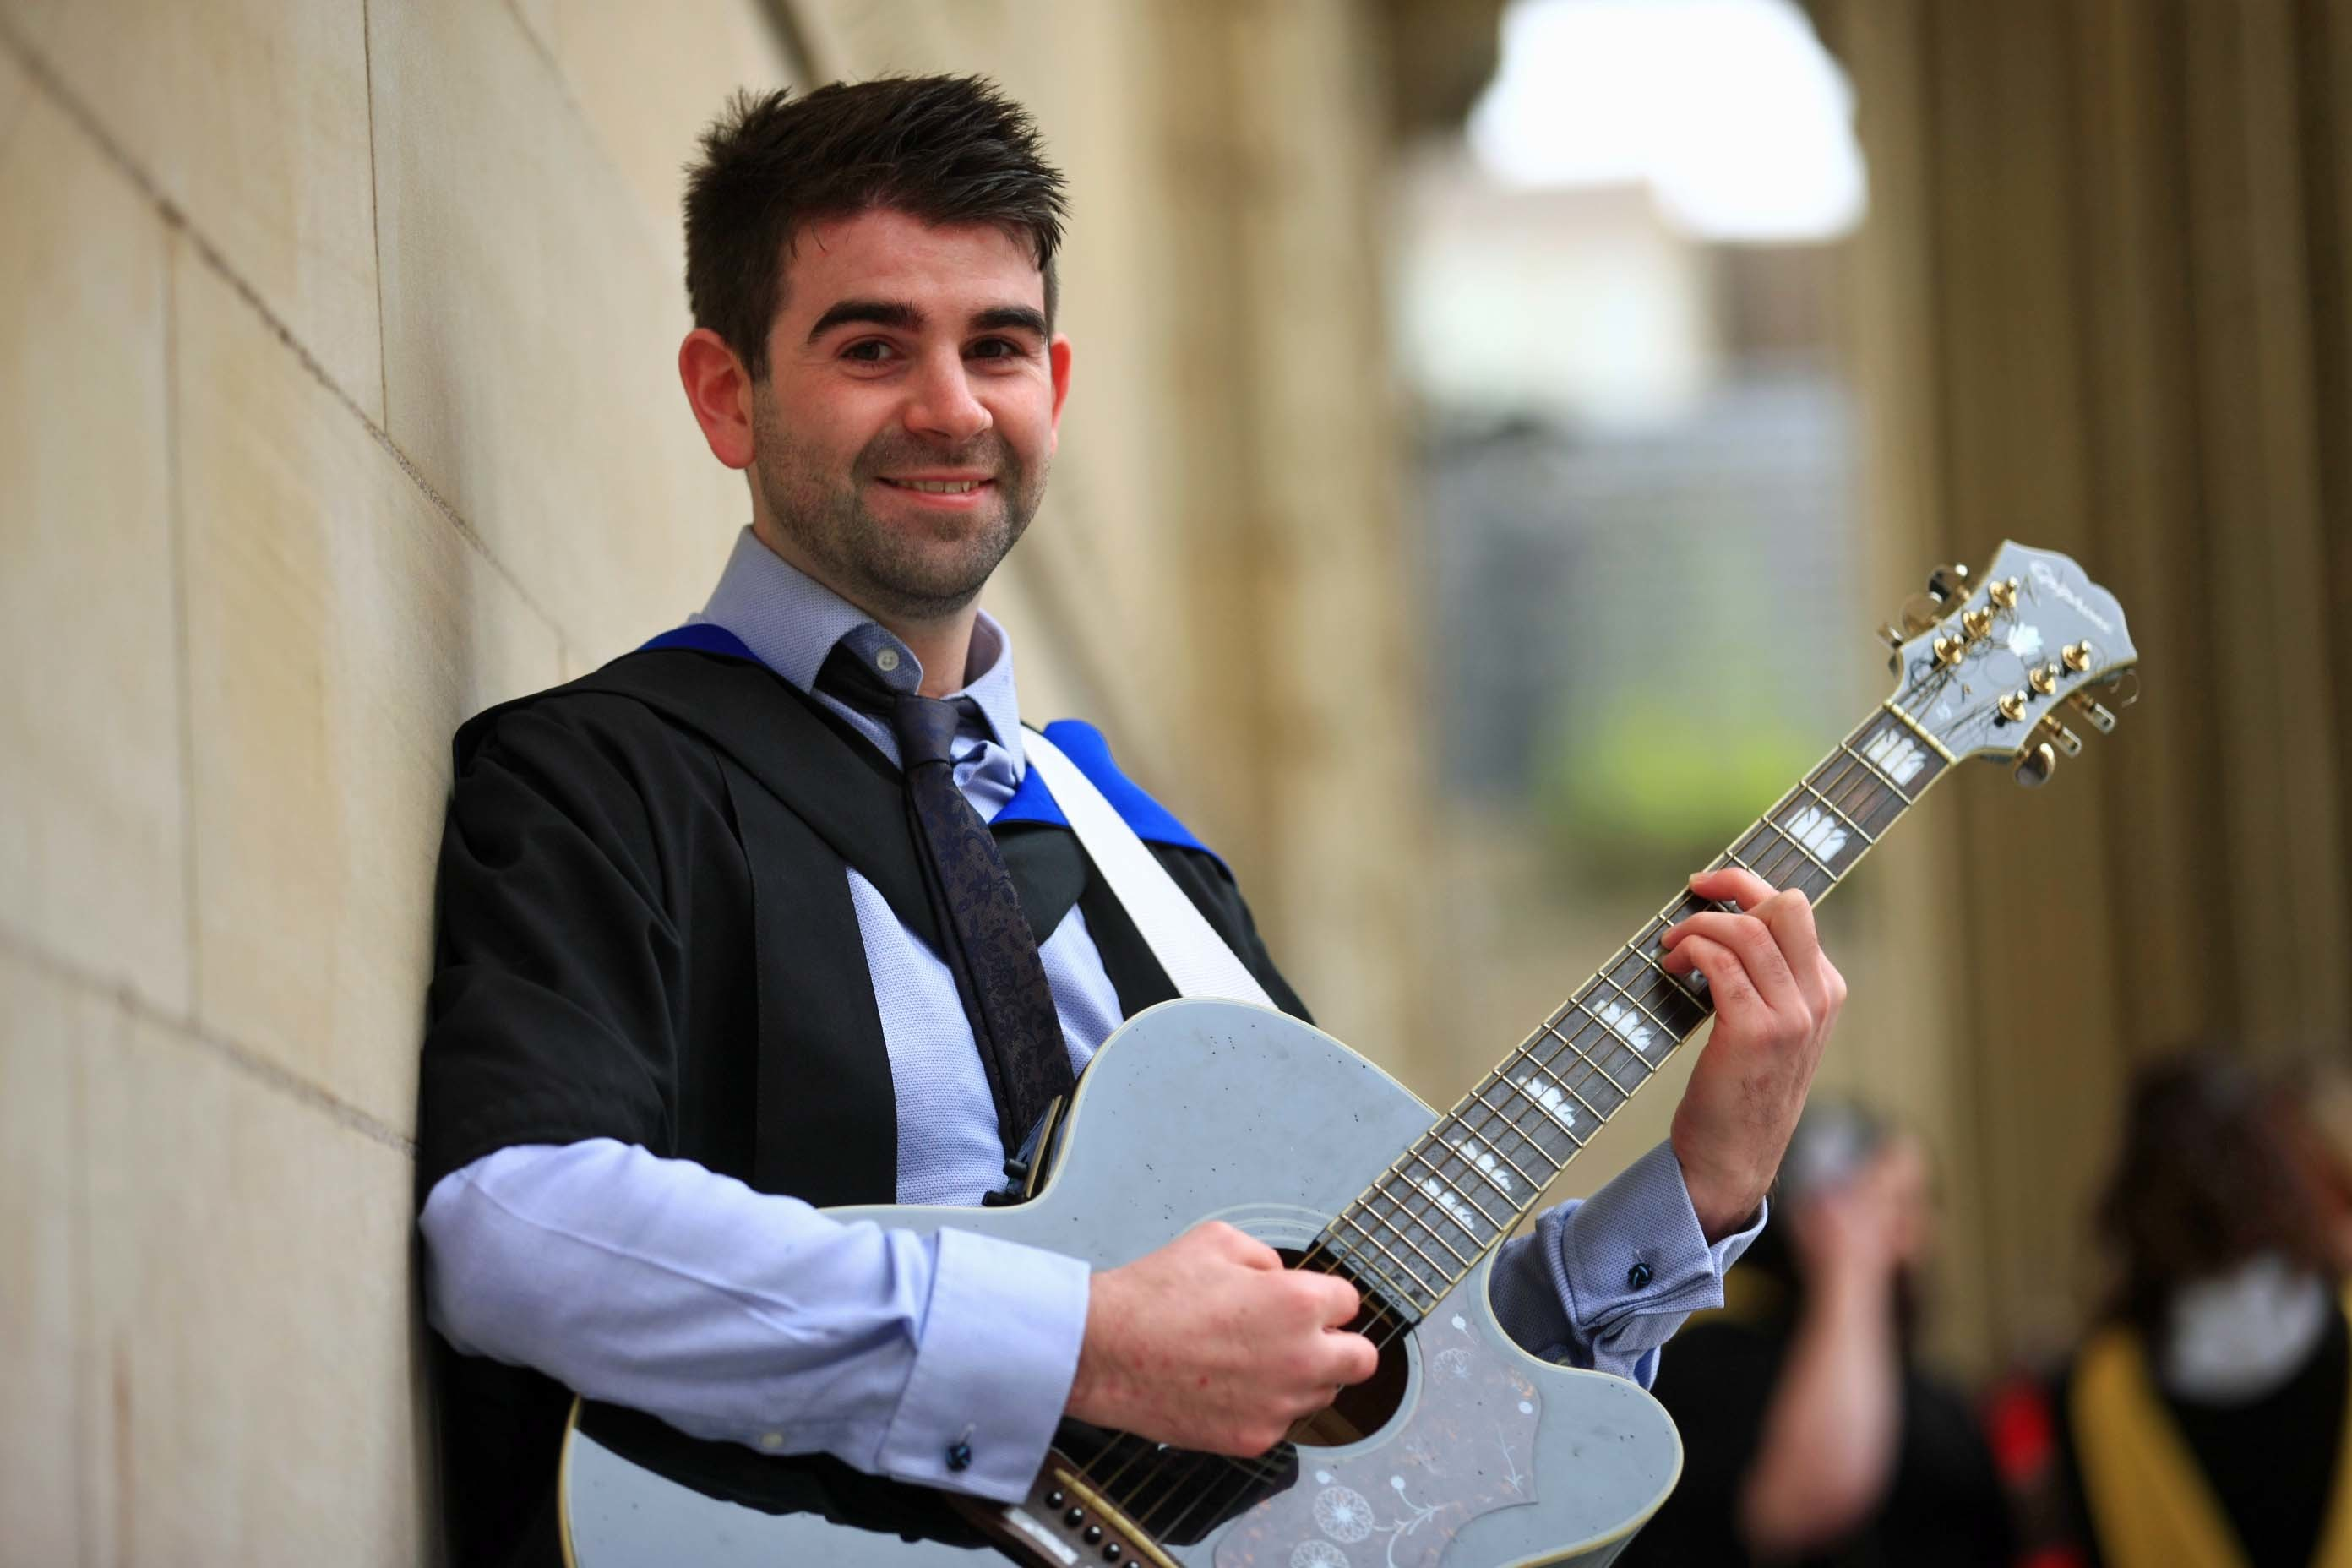 Adam with his guitar ahead of Thursday's graduation.